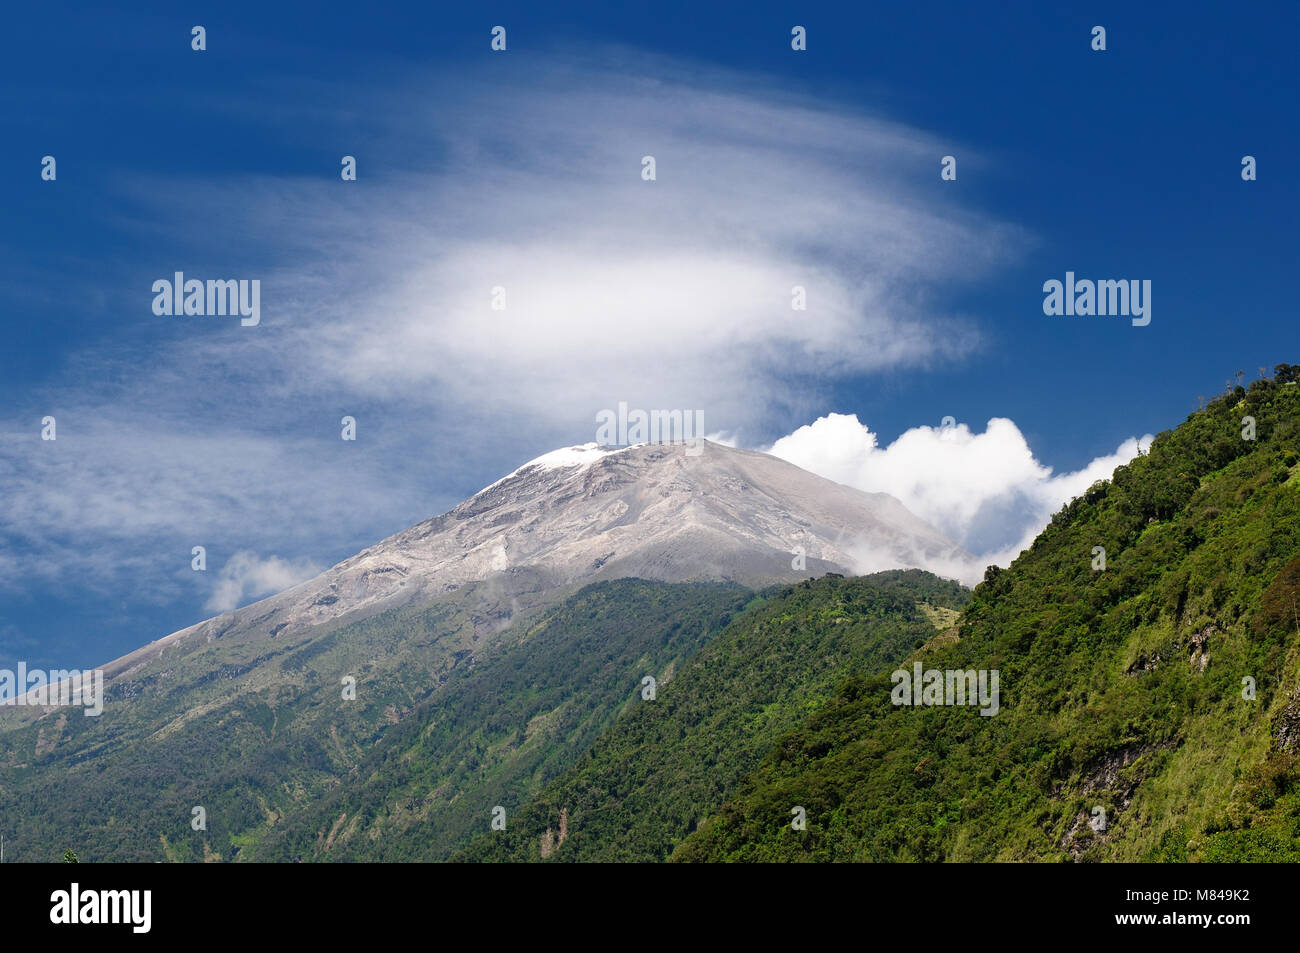 Beautiful landscape in cloud forest near Banos, one of Ecuadors most enticing and popular tourist destination. Volcano - Stock Image